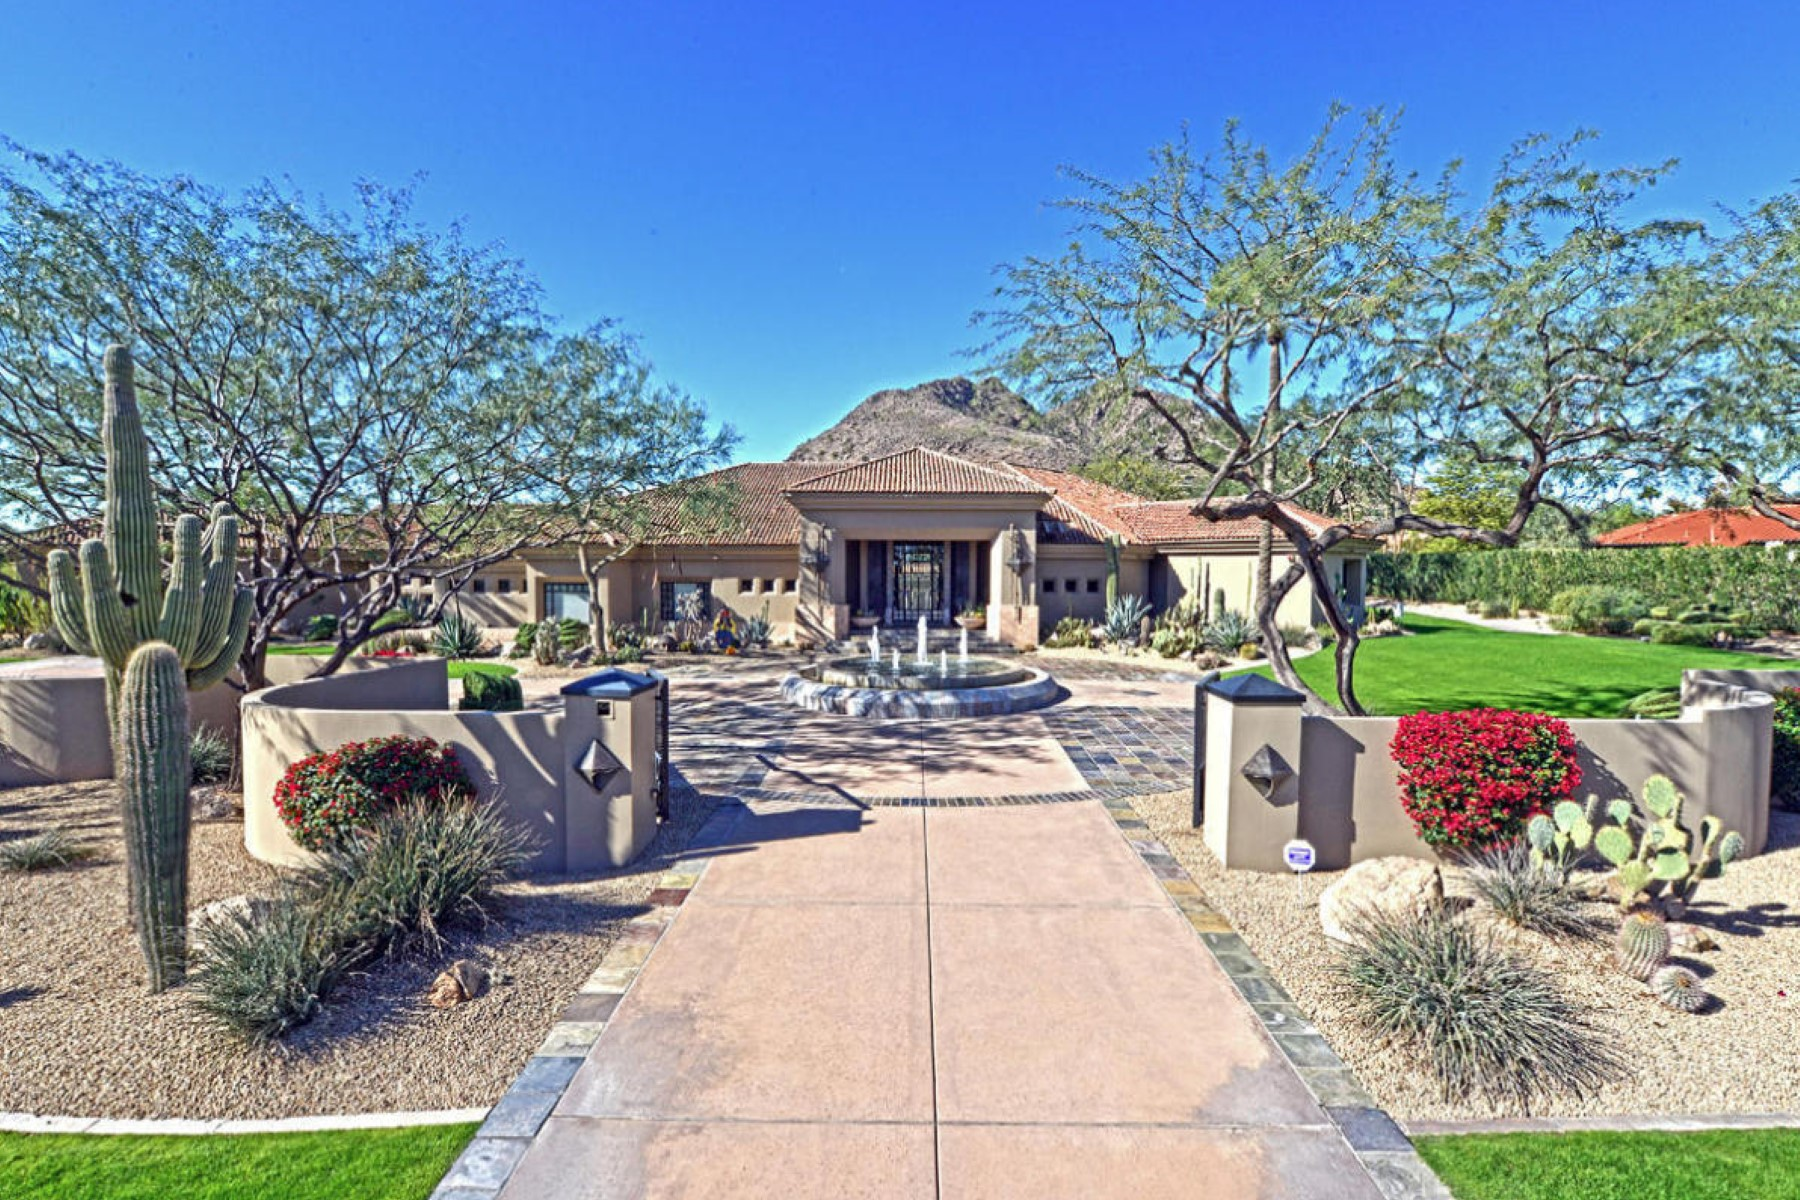 Tek Ailelik Ev için Satış at Valley's iconic streets sits a grand Paradise Valley estate on over 2 gated-acre 5102 N Wilkinson Rd Paradise Valley, Arizona, 85253 Amerika Birleşik Devletleri